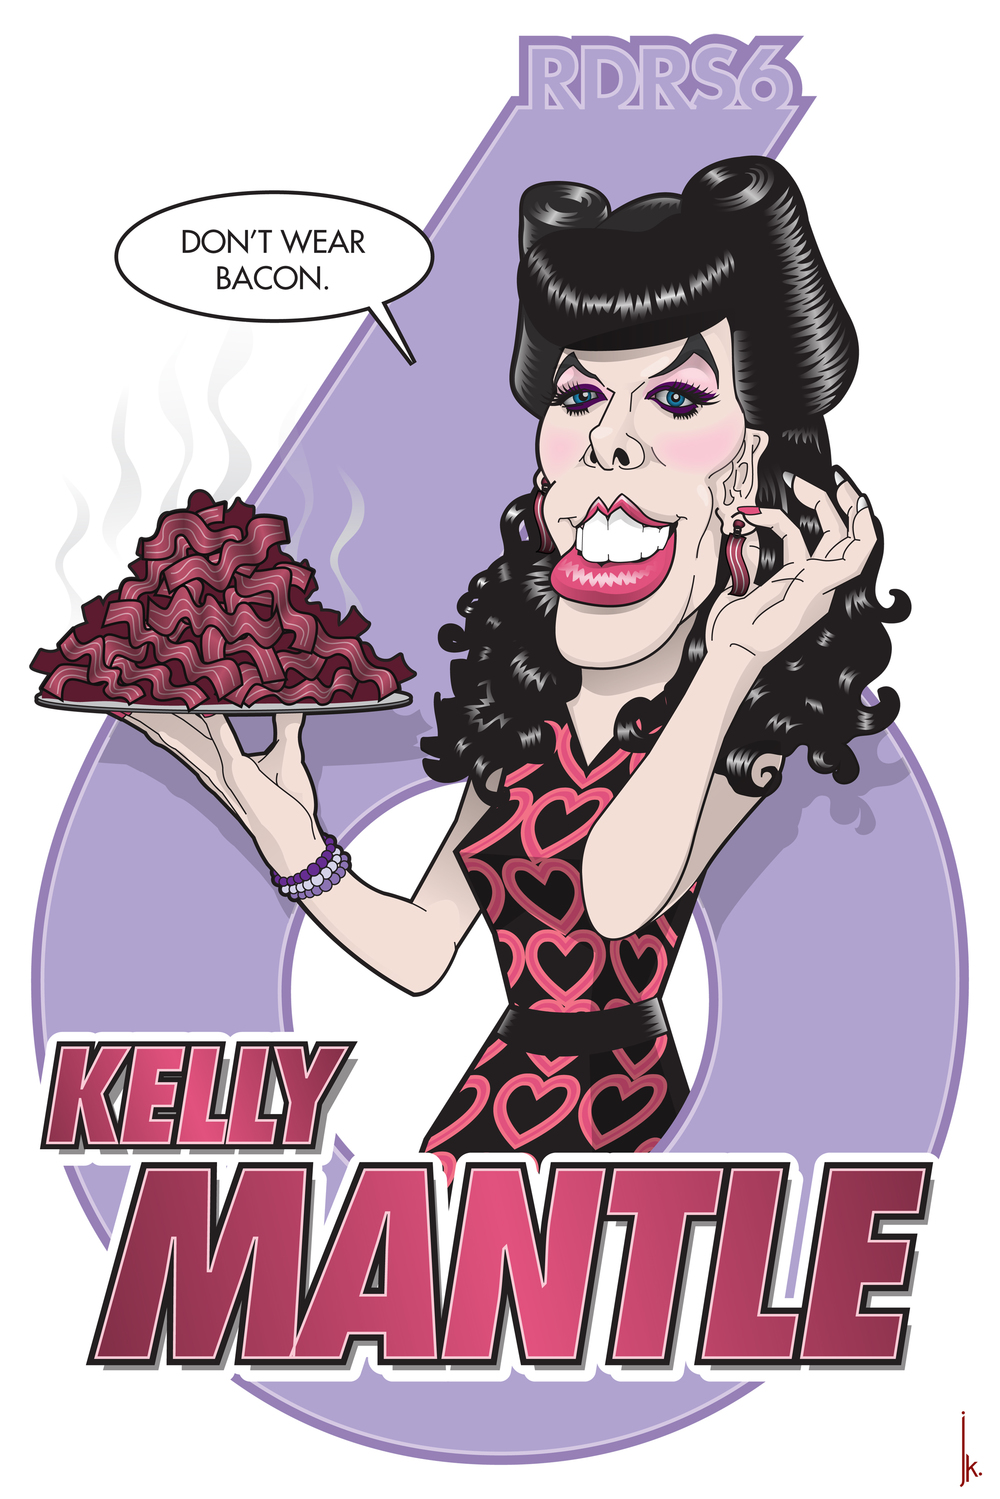 Kelly_Mantle_F_web.jpg